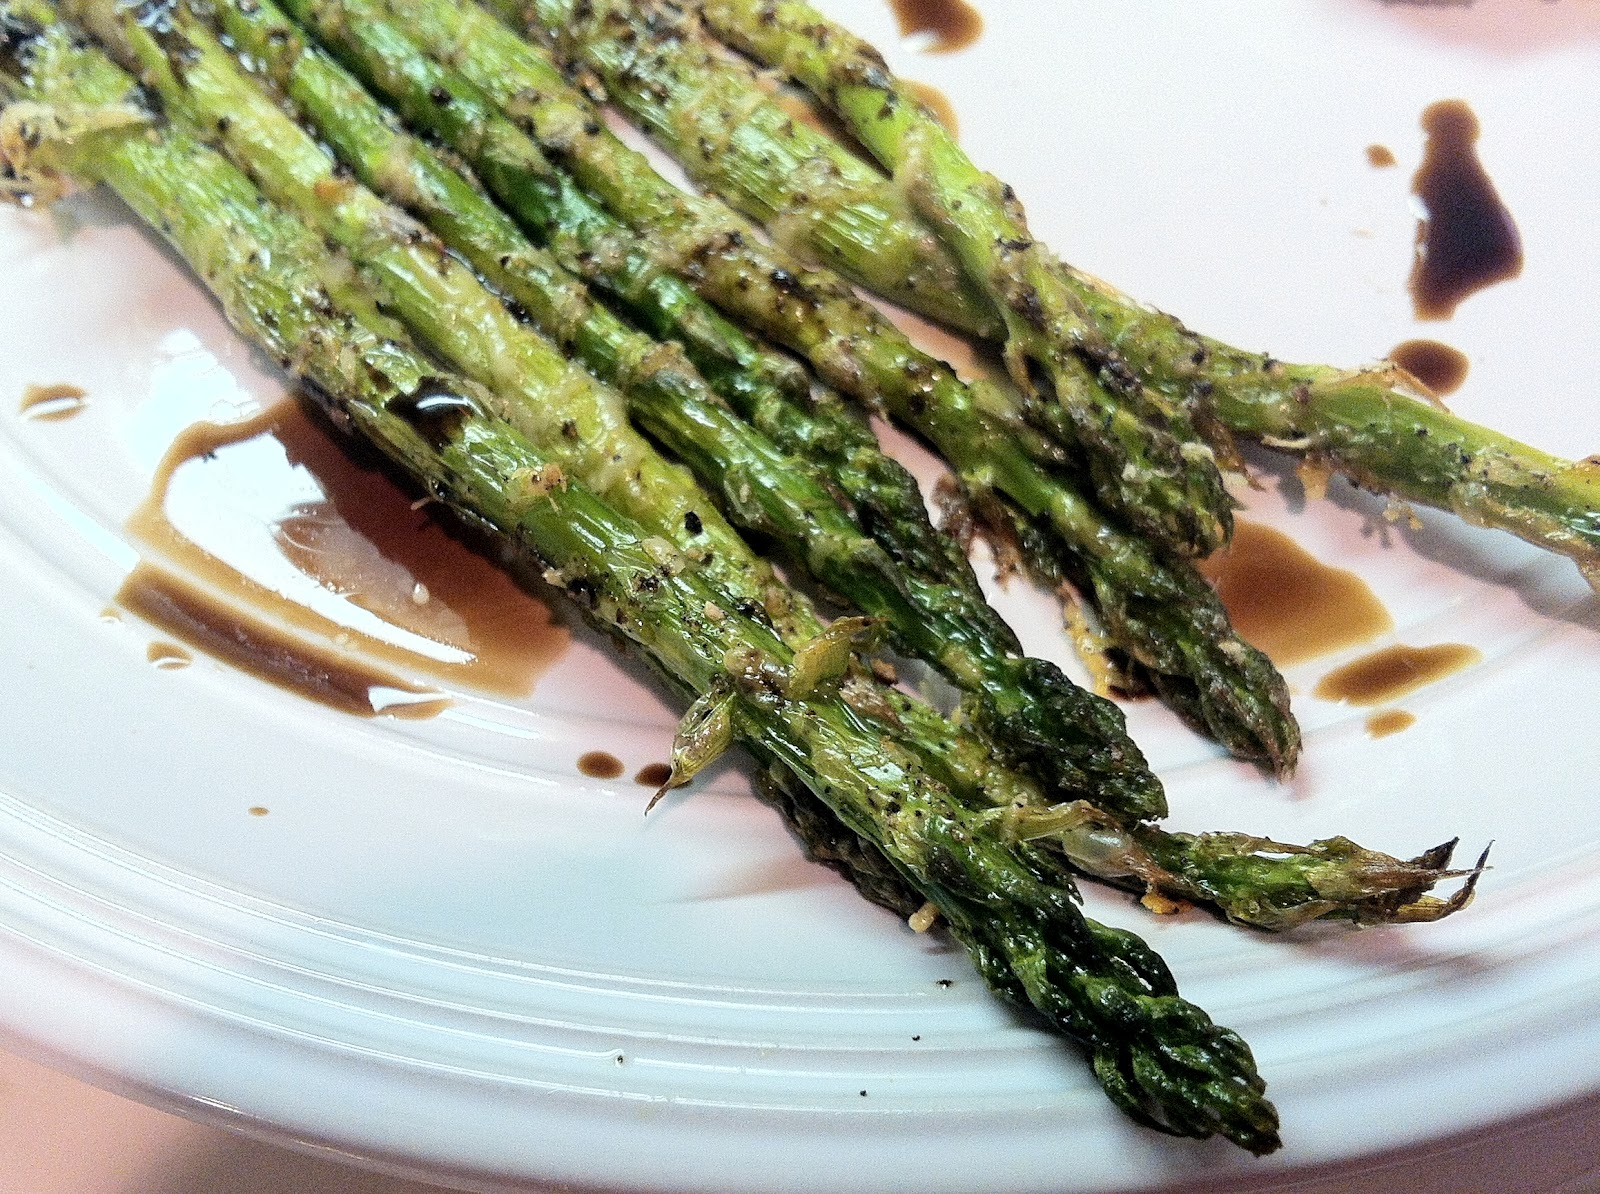 Low Carb Layla: Roasted Parmesan Crusted Asparagus with Balsamic